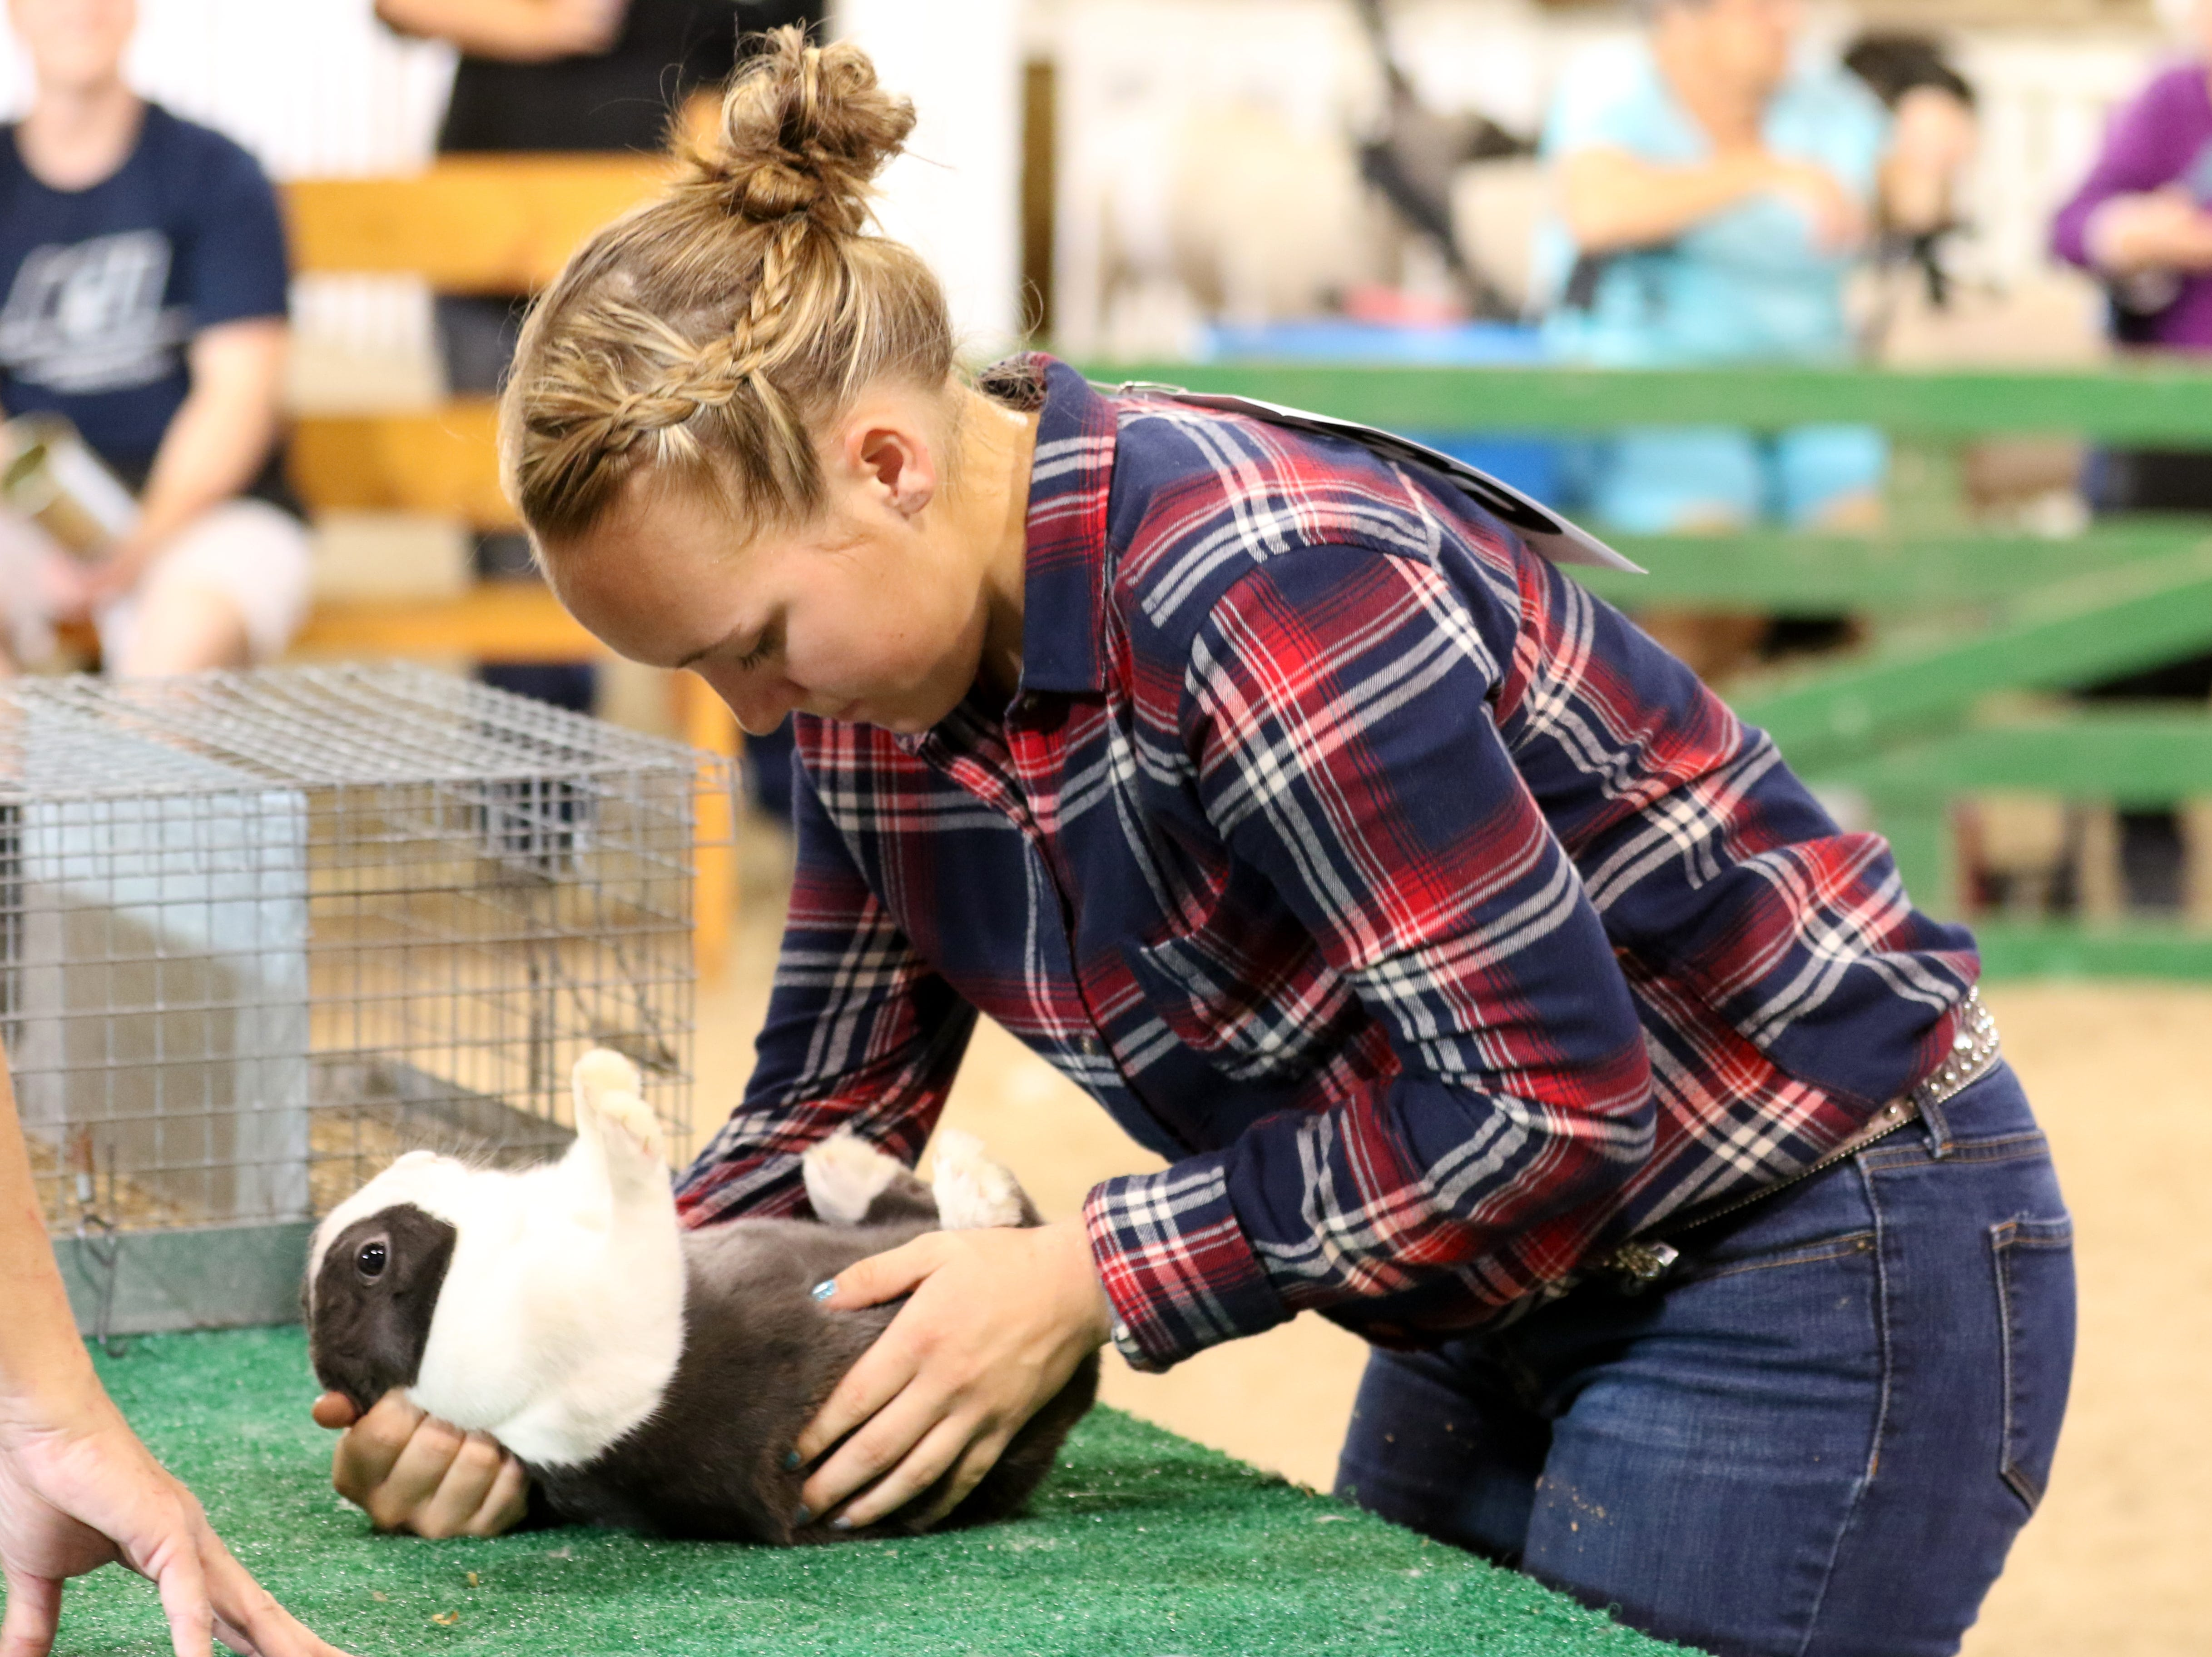 Sydney Zinkon shows a rabbit during the Showman of Showmen at the Coshocton County Fair on Wednesday.